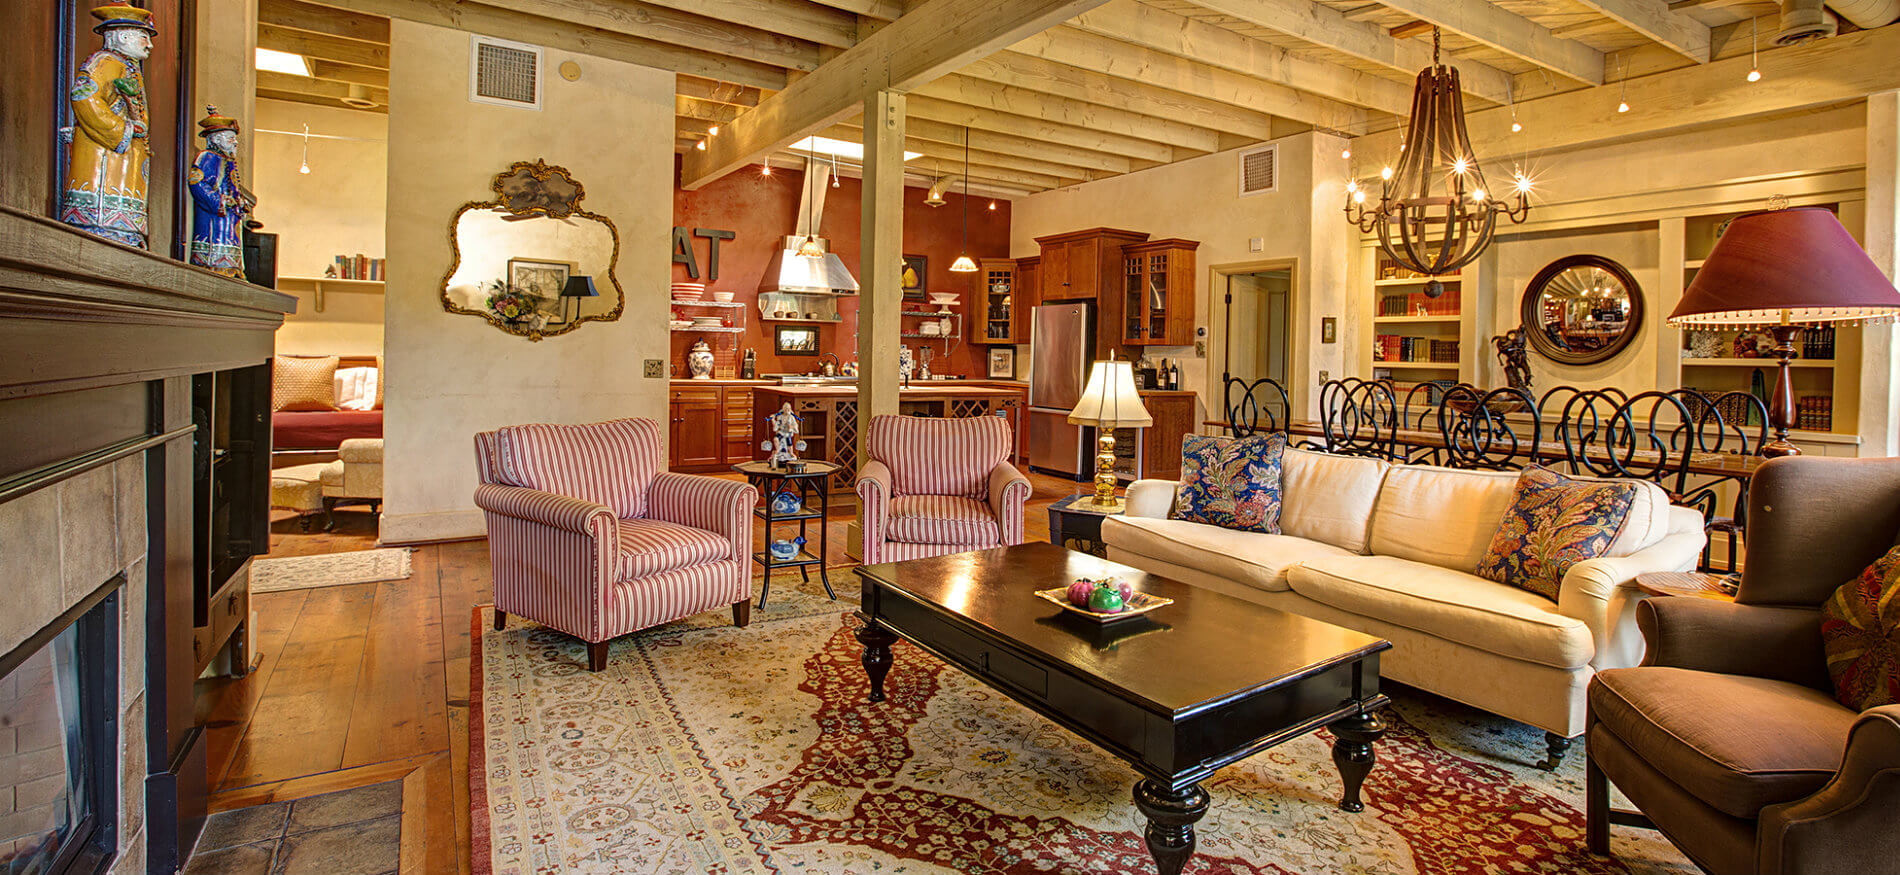 Open area with exposed ceiling beams, warm wood floors, rich wood kitchen cabinetry, and living area around a fireplace